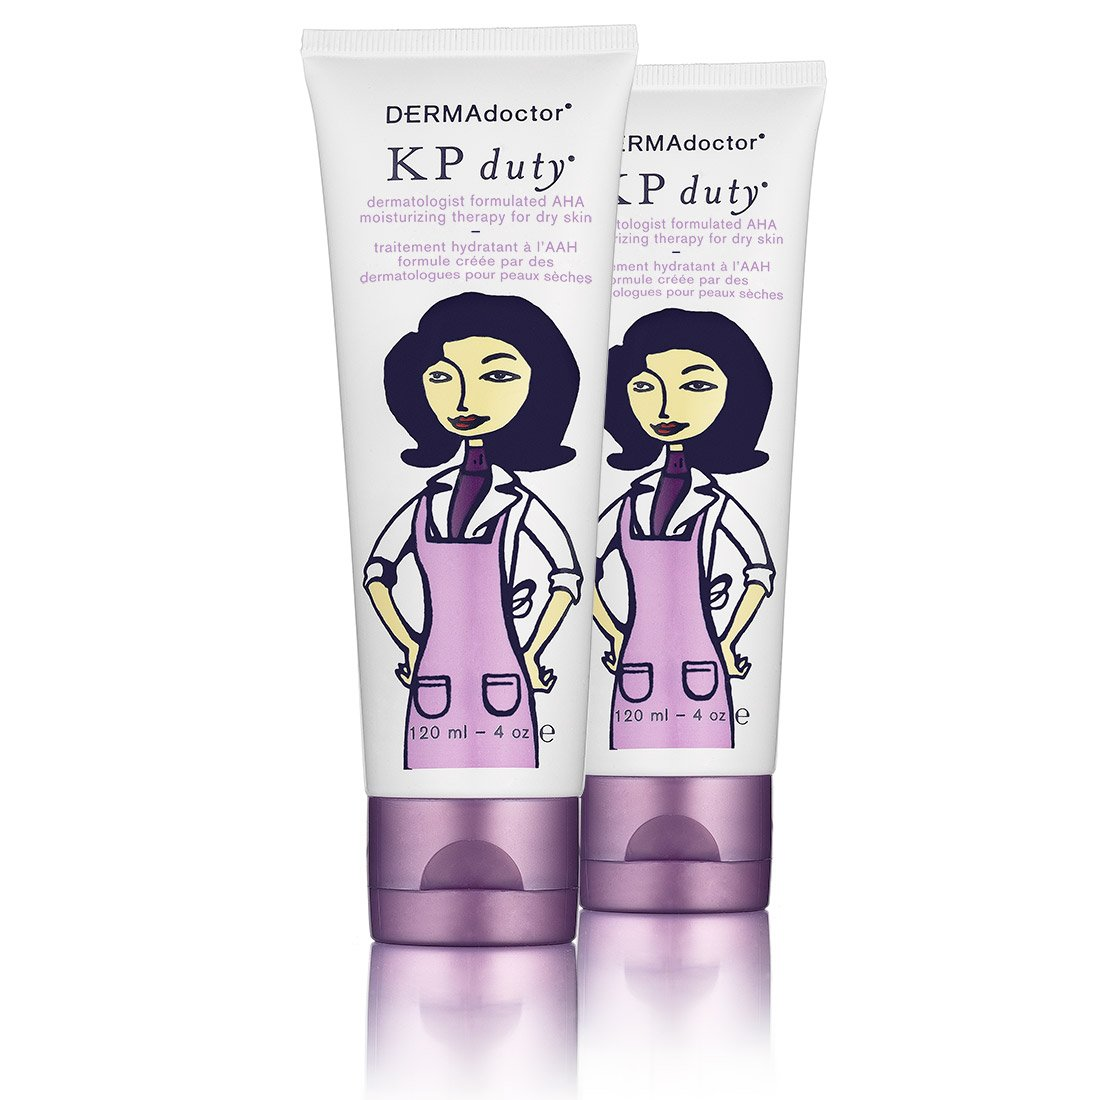 DERMAdoctor KP Double Duty dual pack - 240 ml (two 120 ml tubes)